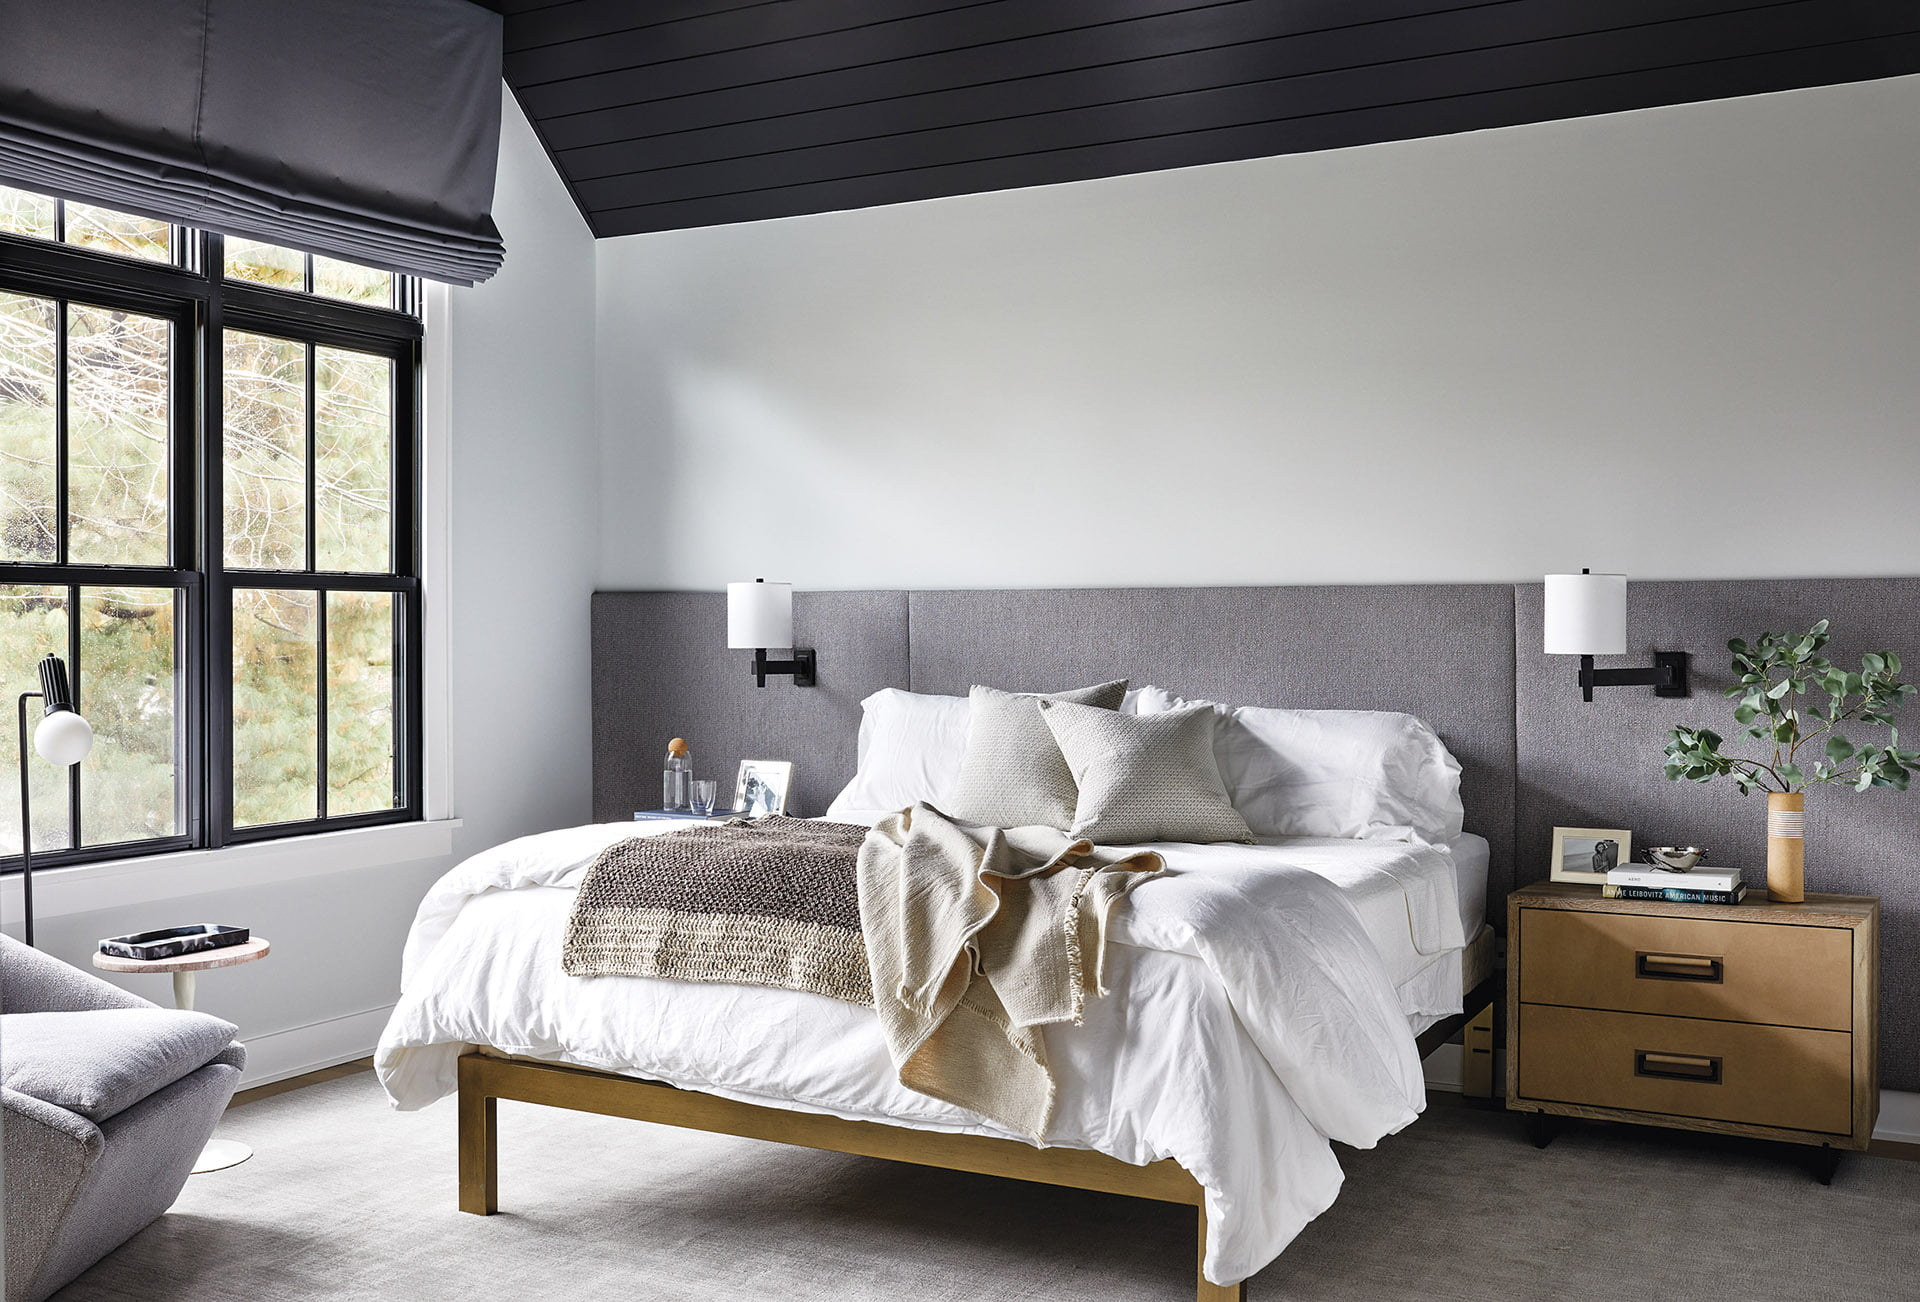 Rodolph fabric panels made by Flowers Upholstery anchors the owners bed